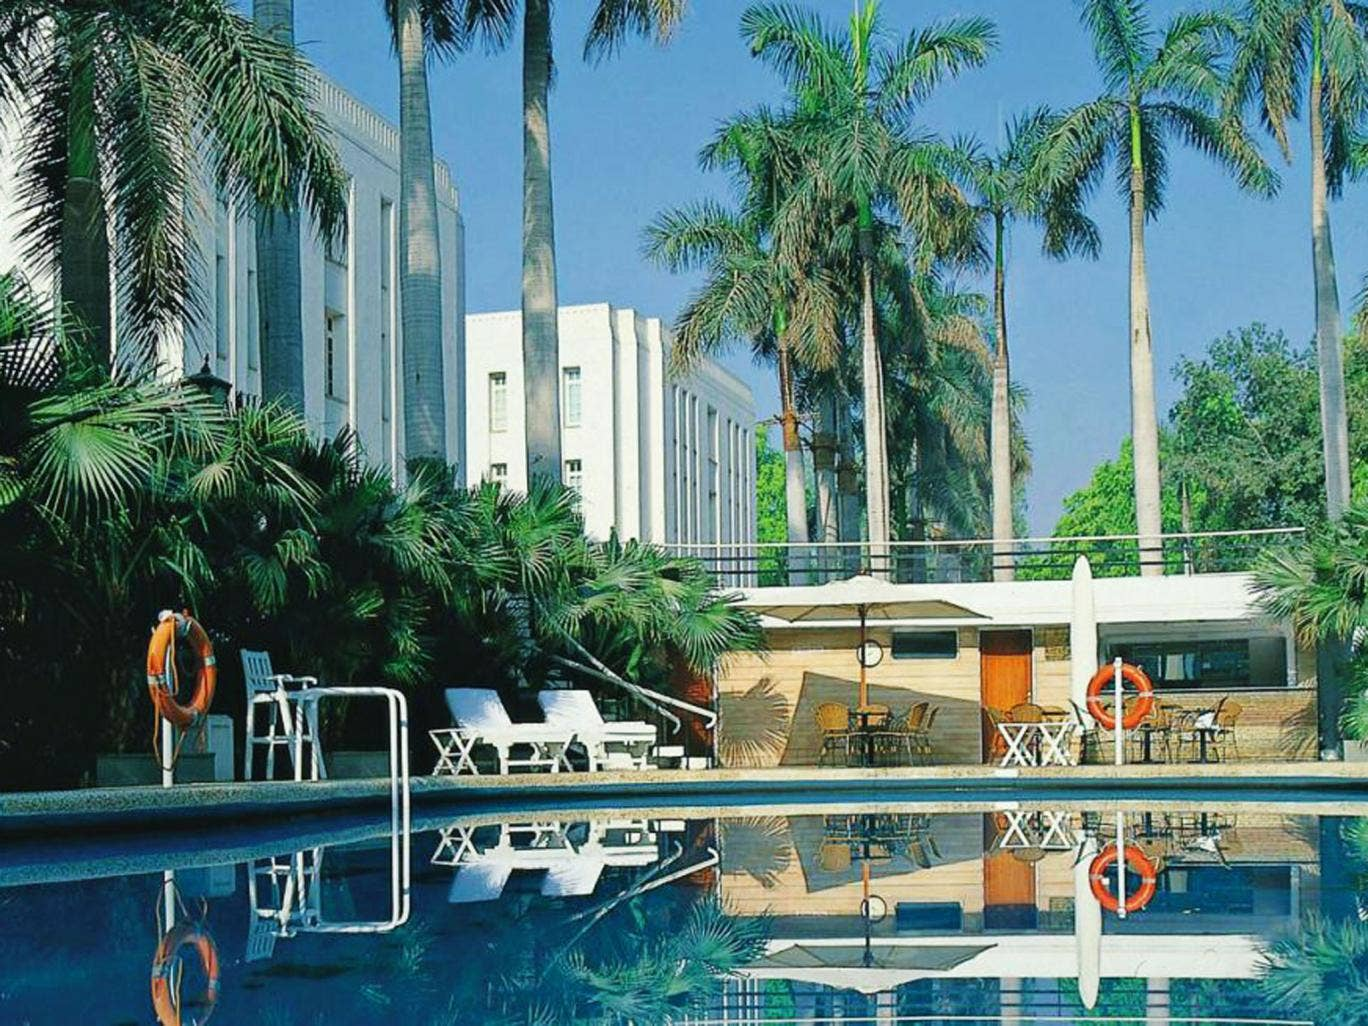 Pool resources: the Imperial Hotel blends character and style